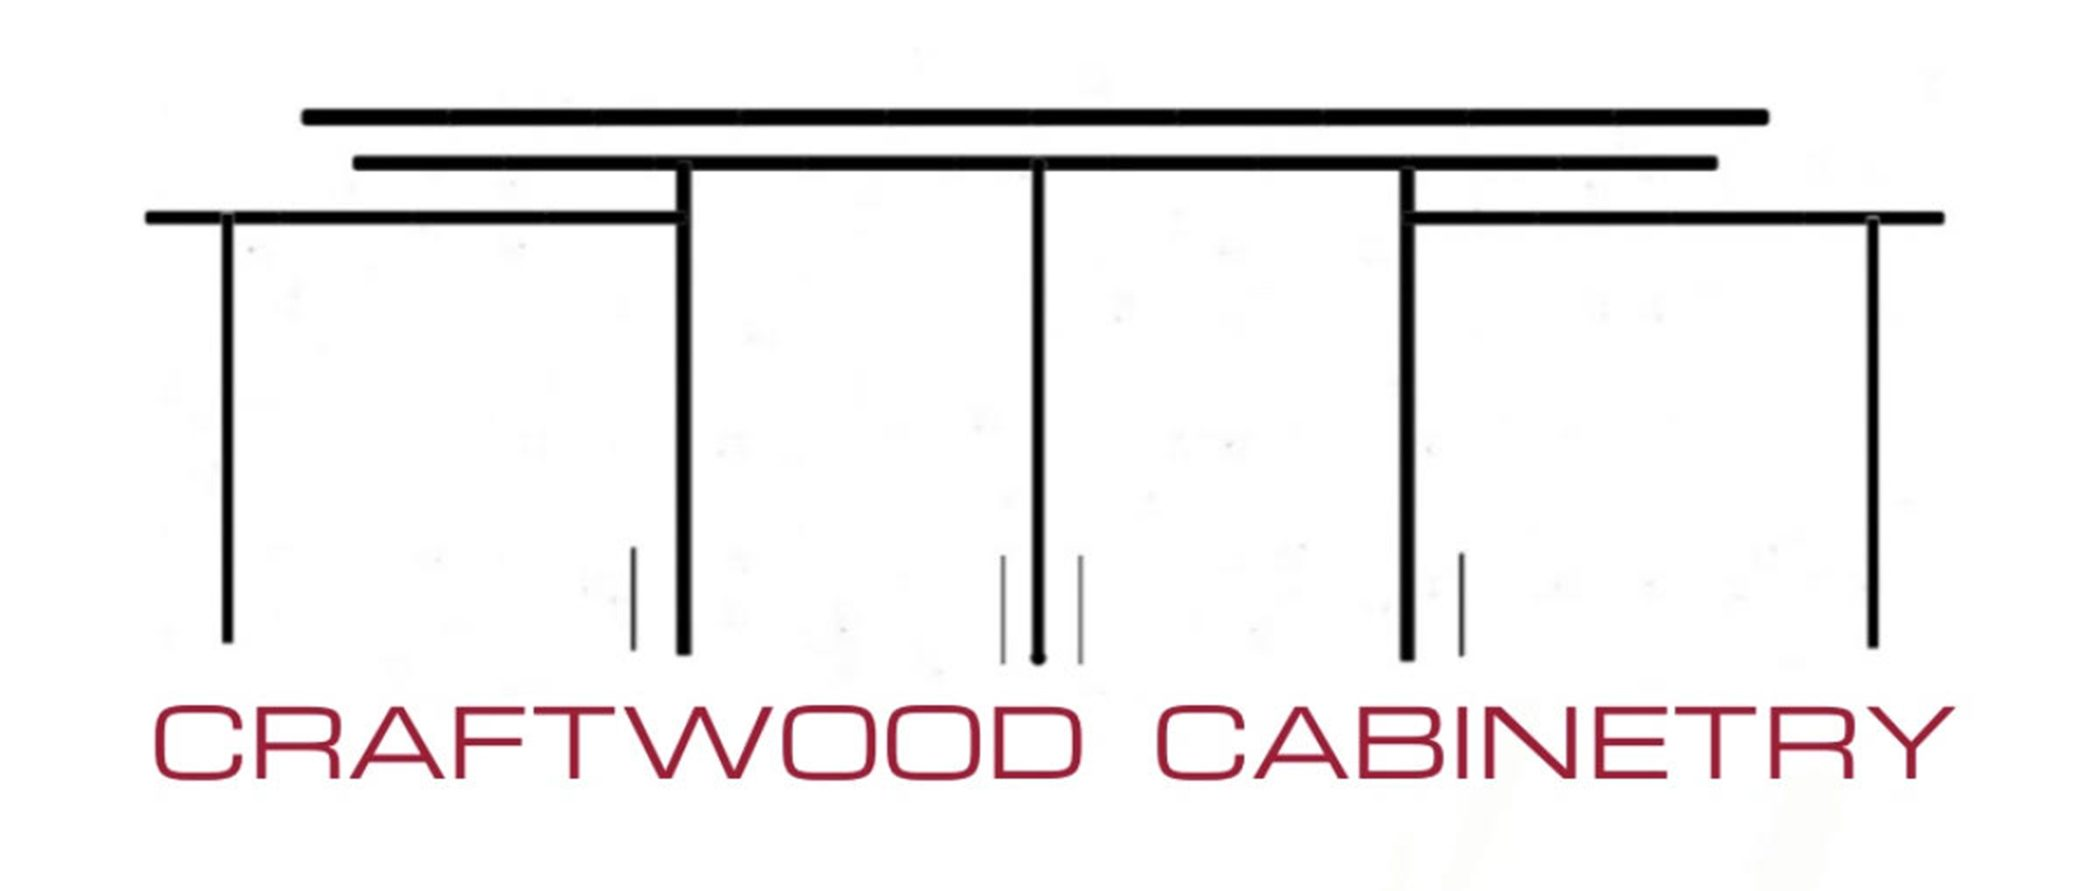 Craftwood Cabinetry